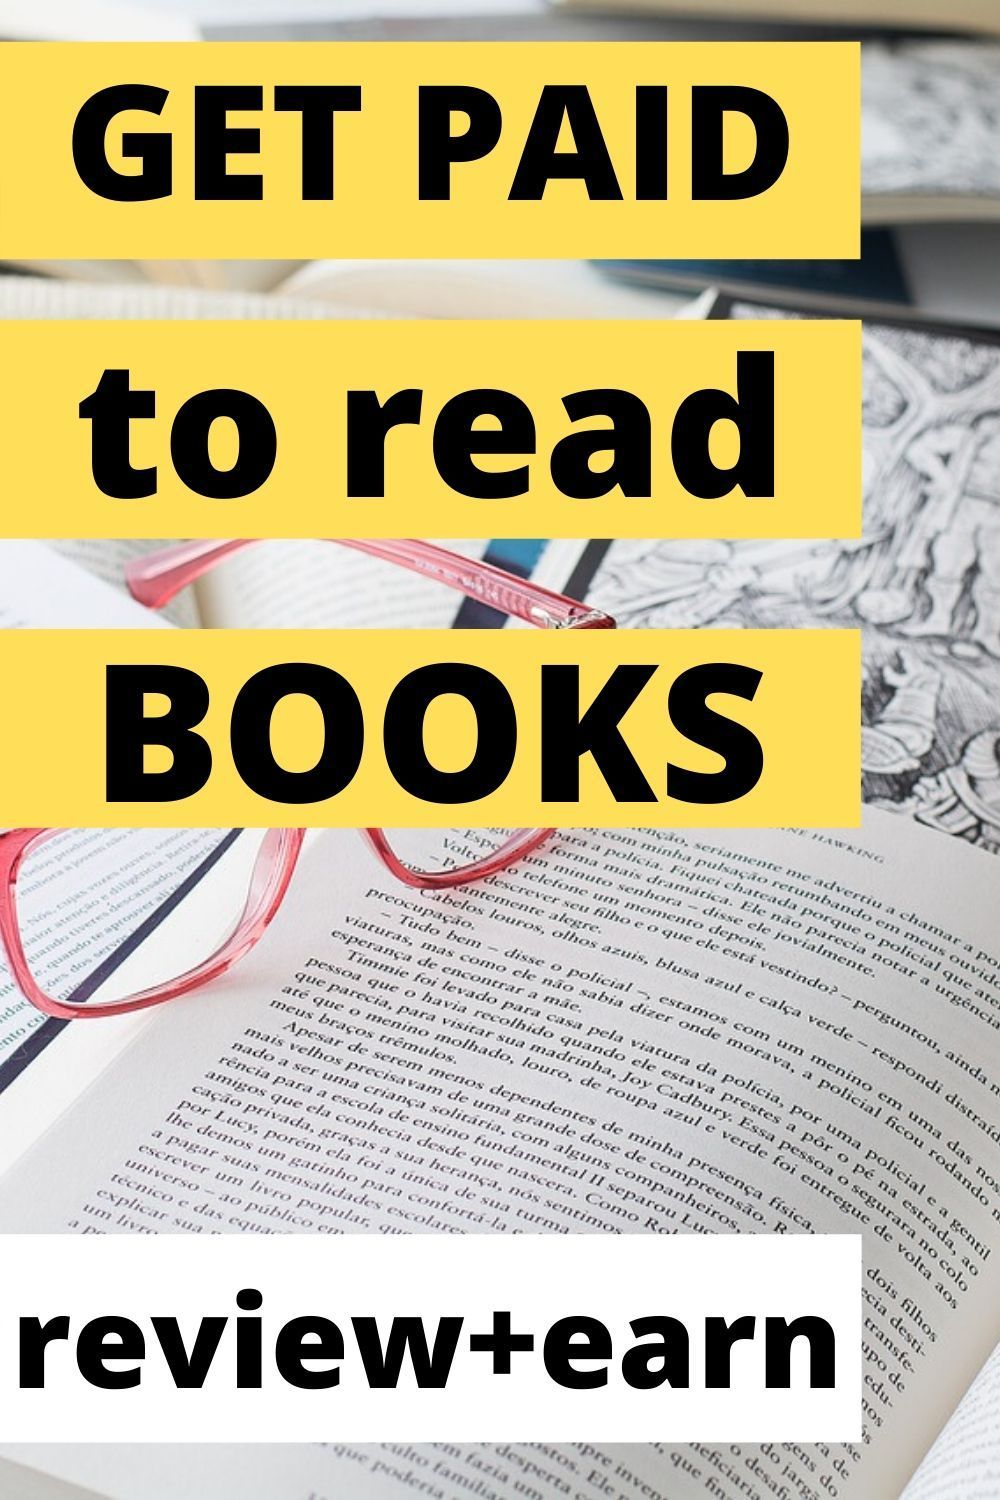 167df1b8c0e3f6e815e648ac3462758e - How To Get Free Books To Review On Your Blog